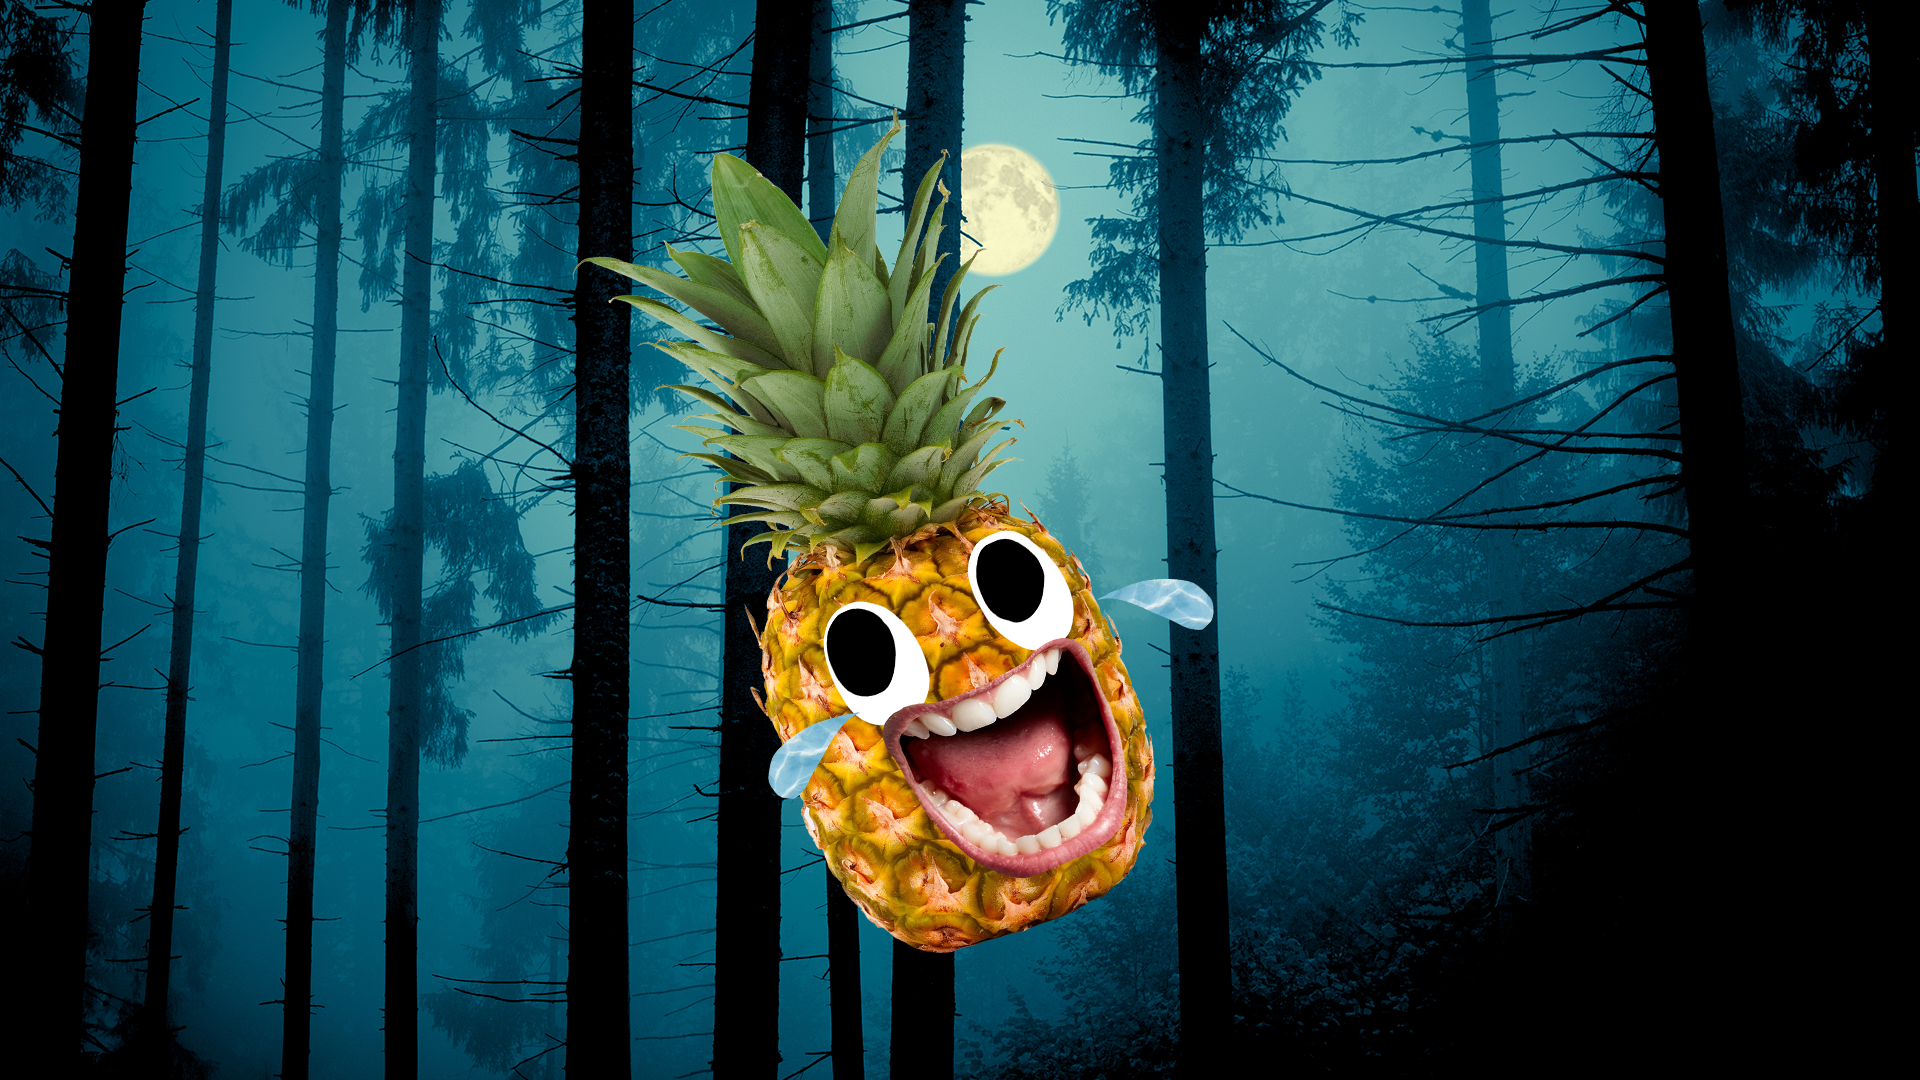 Laughing pineapple in front of a full moon and spooky looking forest